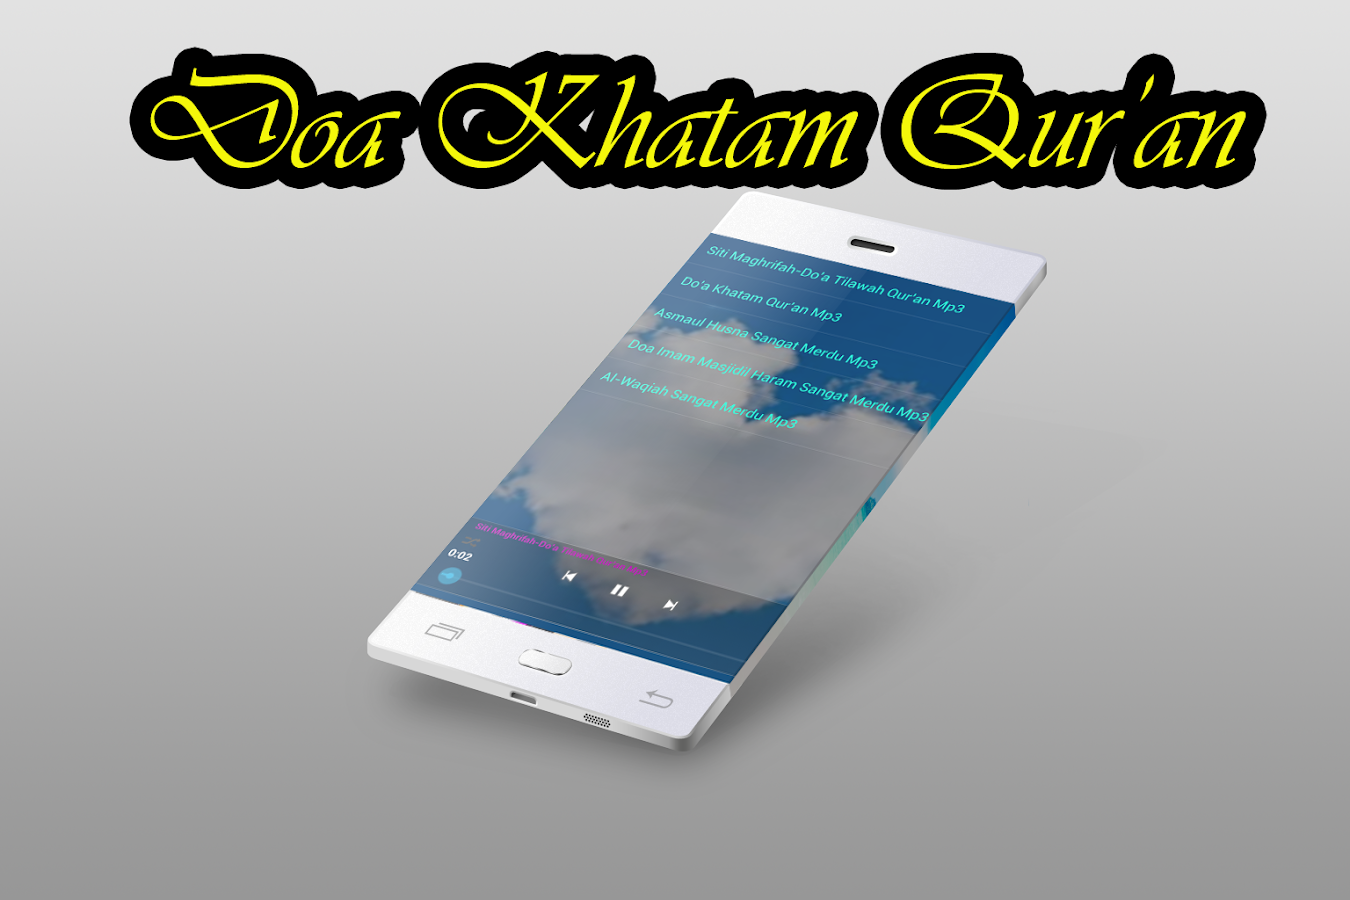 Doa Khatam Al Quran Android Apps On Google Play